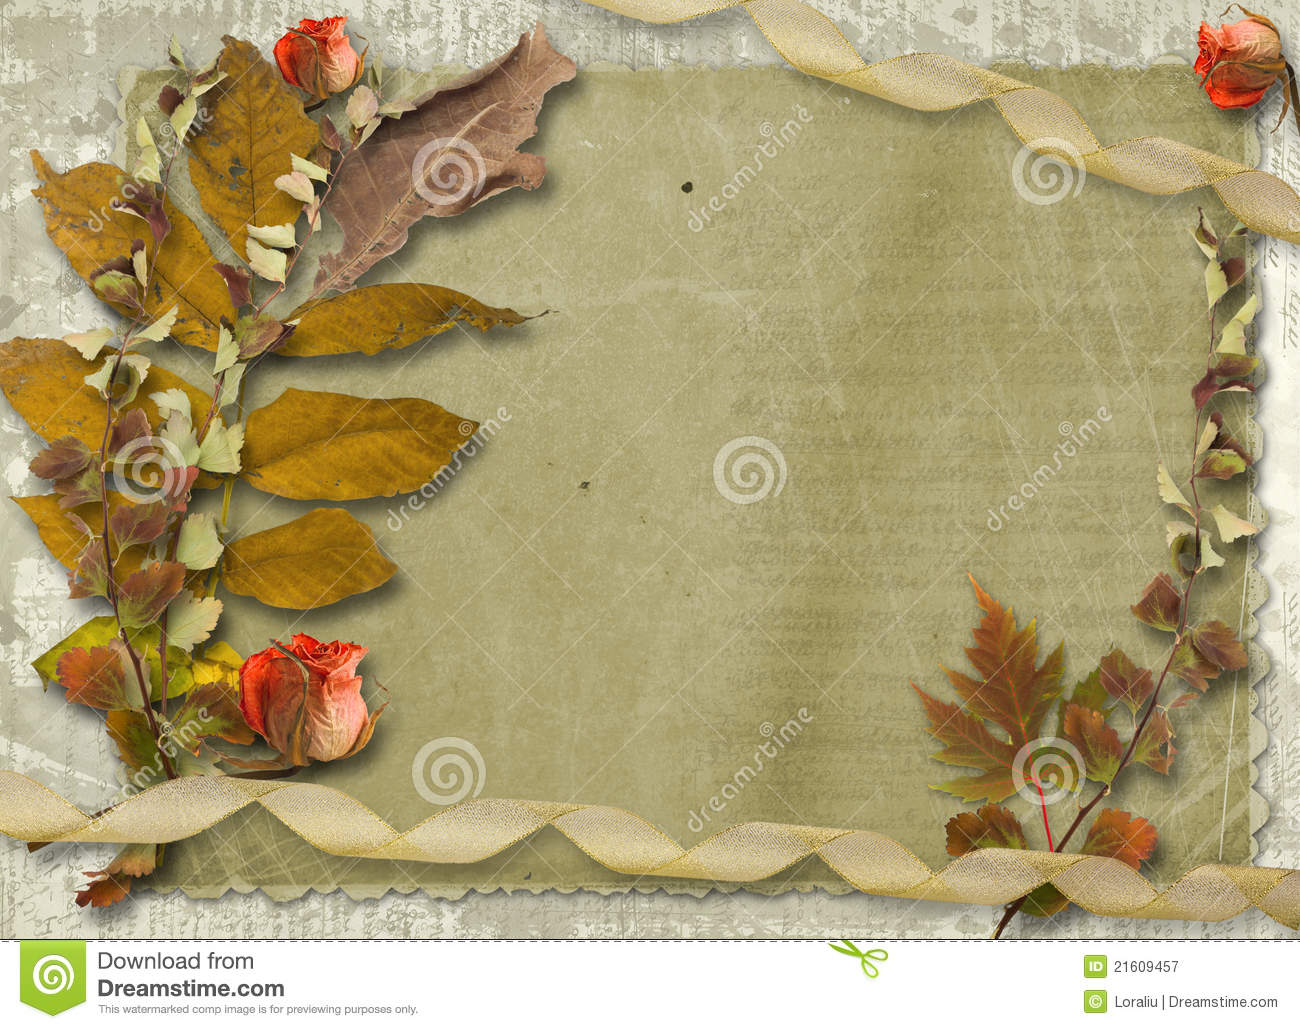 grunge papers design with slides and foliage stock illustration